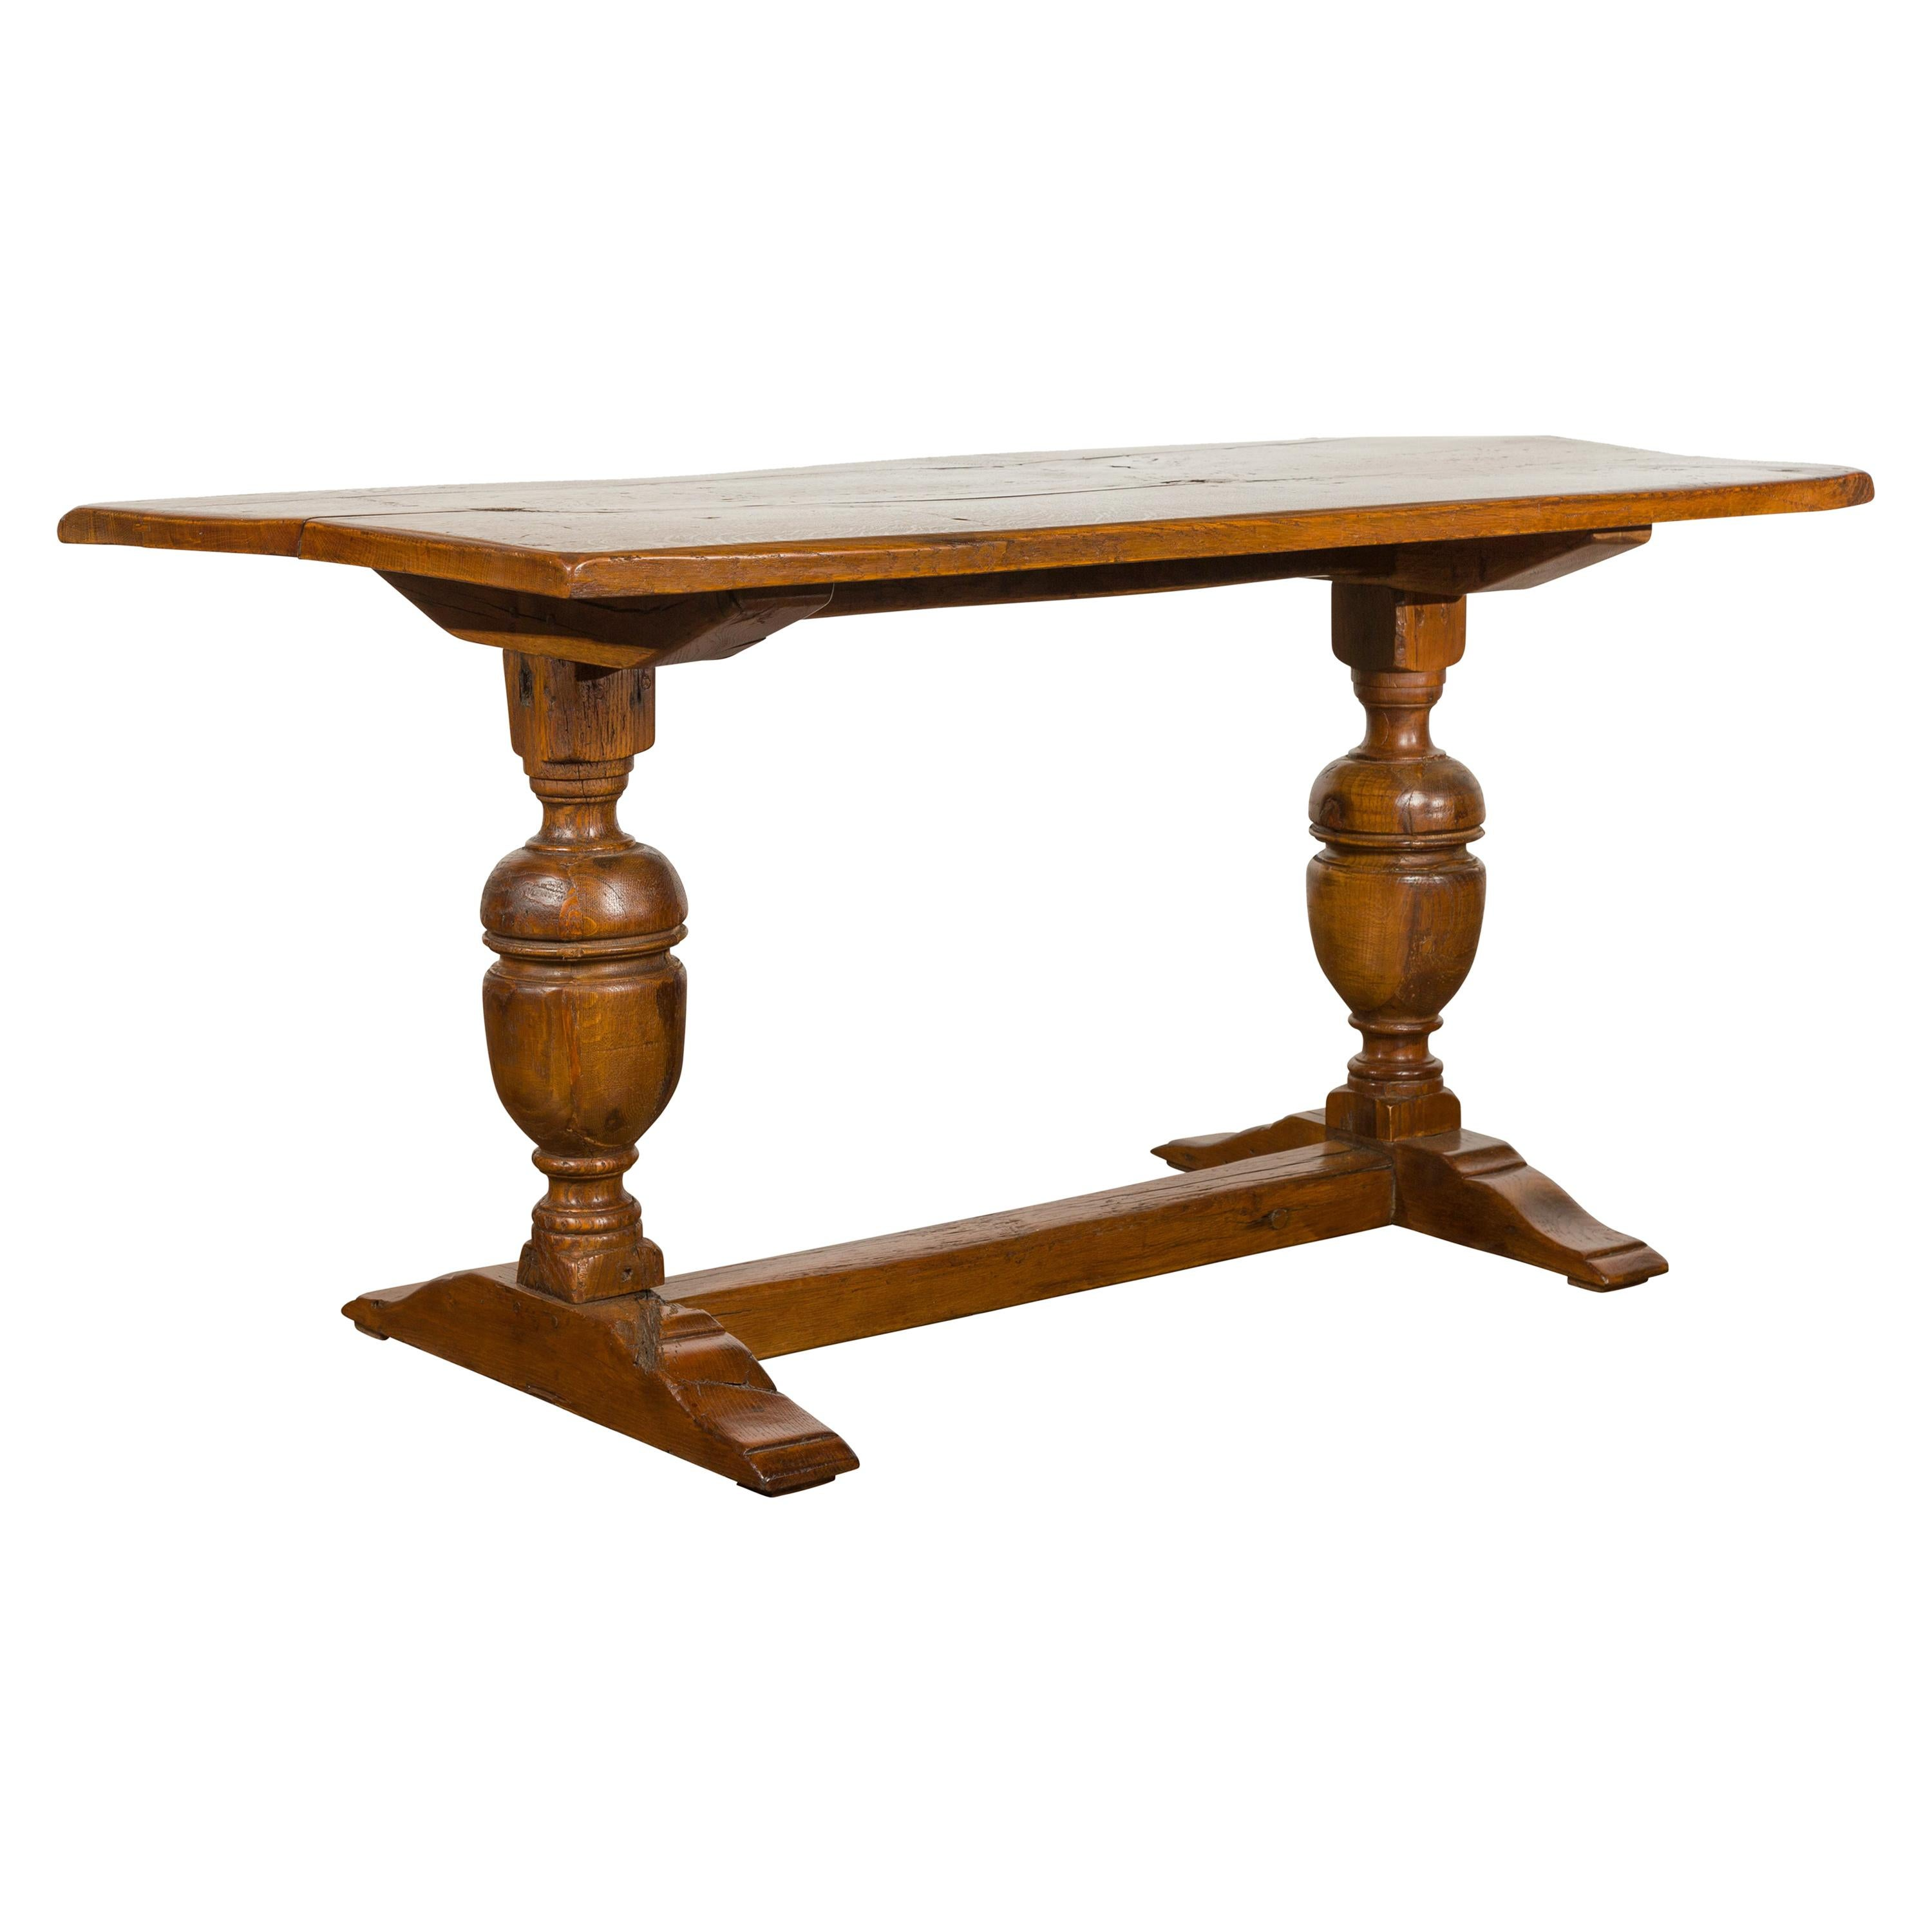 English 1880s Oak Table with Large Turned Legs and Low Cross Stretcher